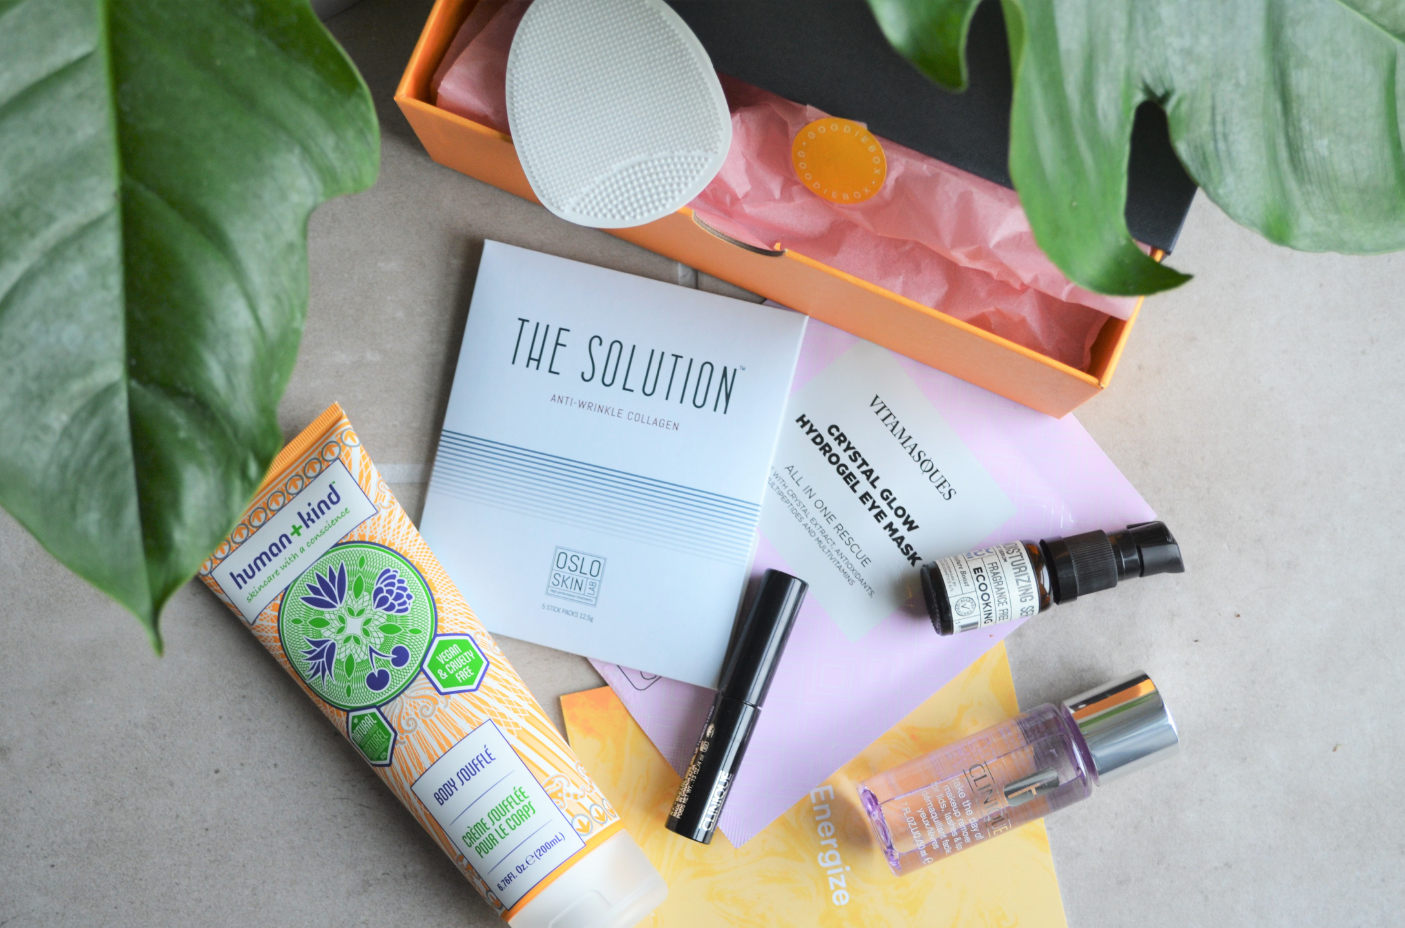 goodiebox februar 2020 1